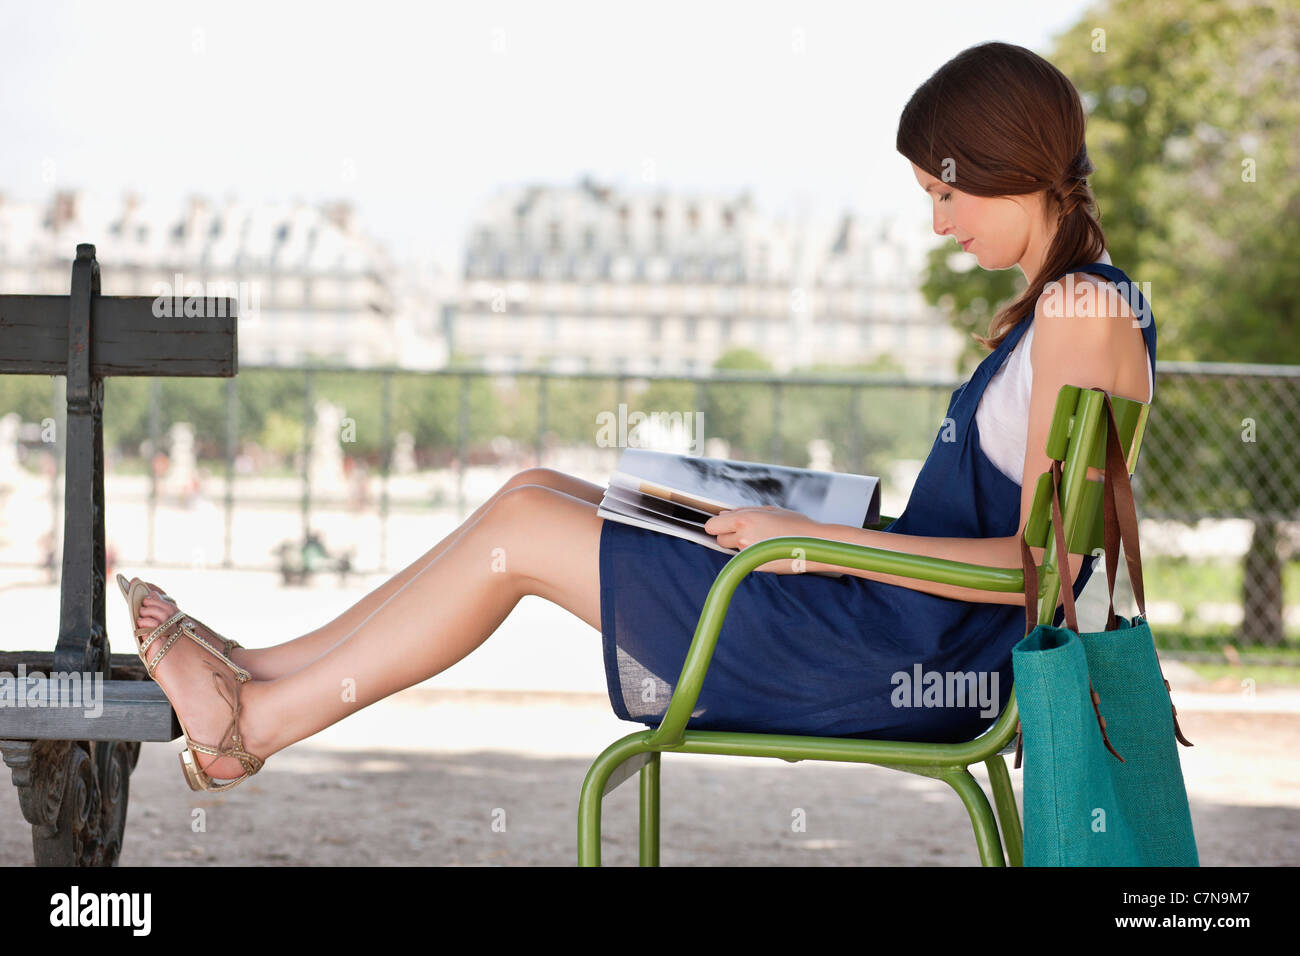 Woman sitting in a chair and reading a magazine, Jardin des Tuileries, Paris, Ile-de-France, France - Stock Image